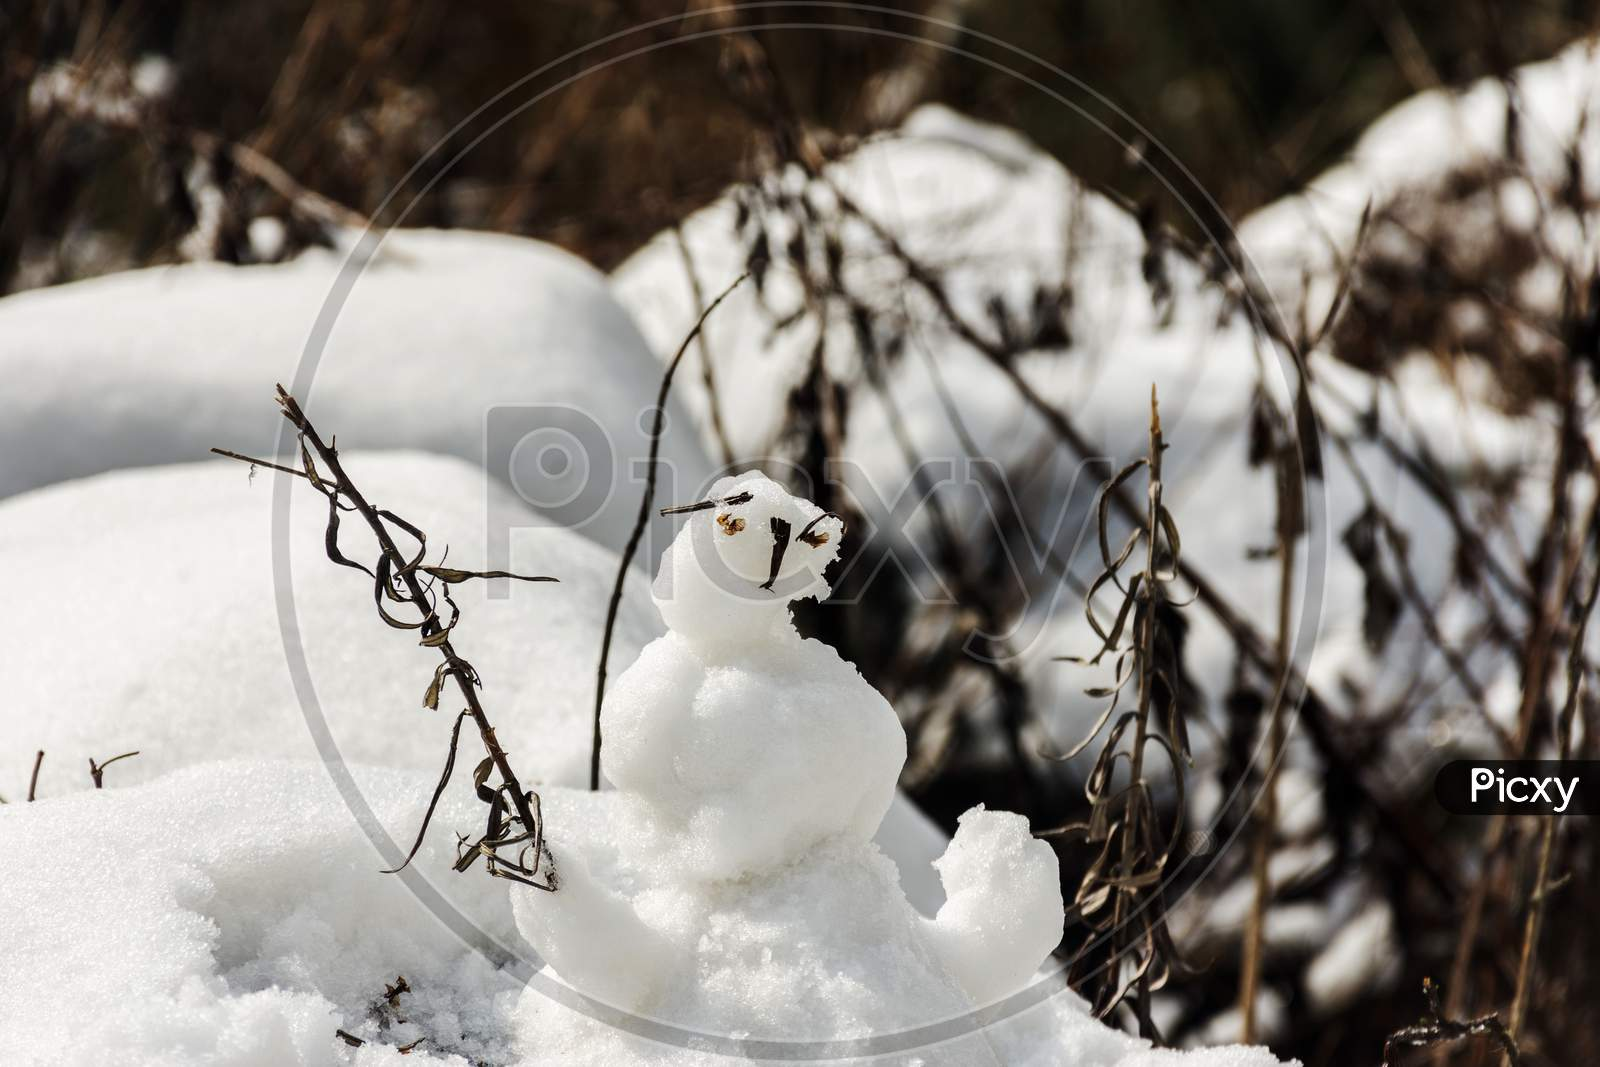 Tourist Made Small Snow Man With Ice While After Snowfall.